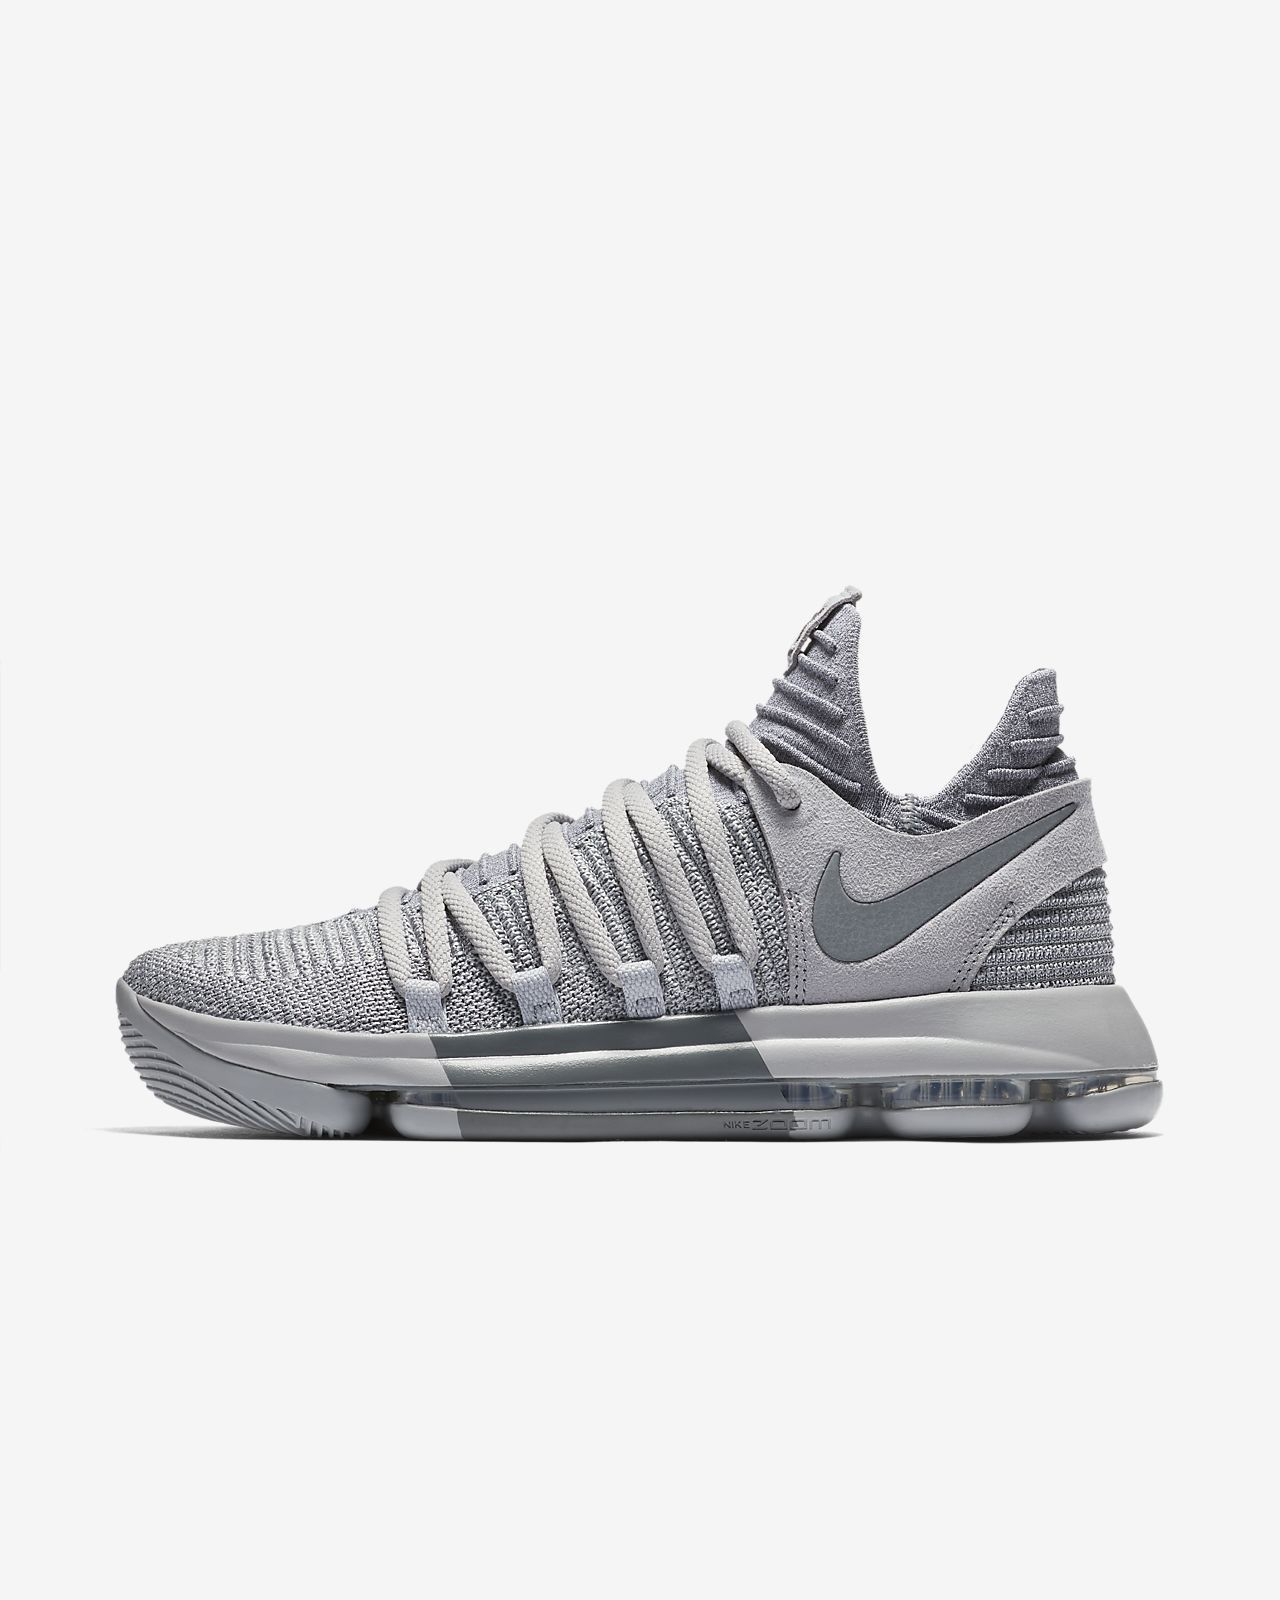 best sneakers 8c492 5315d Nike Zoom Kdx Basketball Shoe - M 13 / W 14.5 Grey | Products